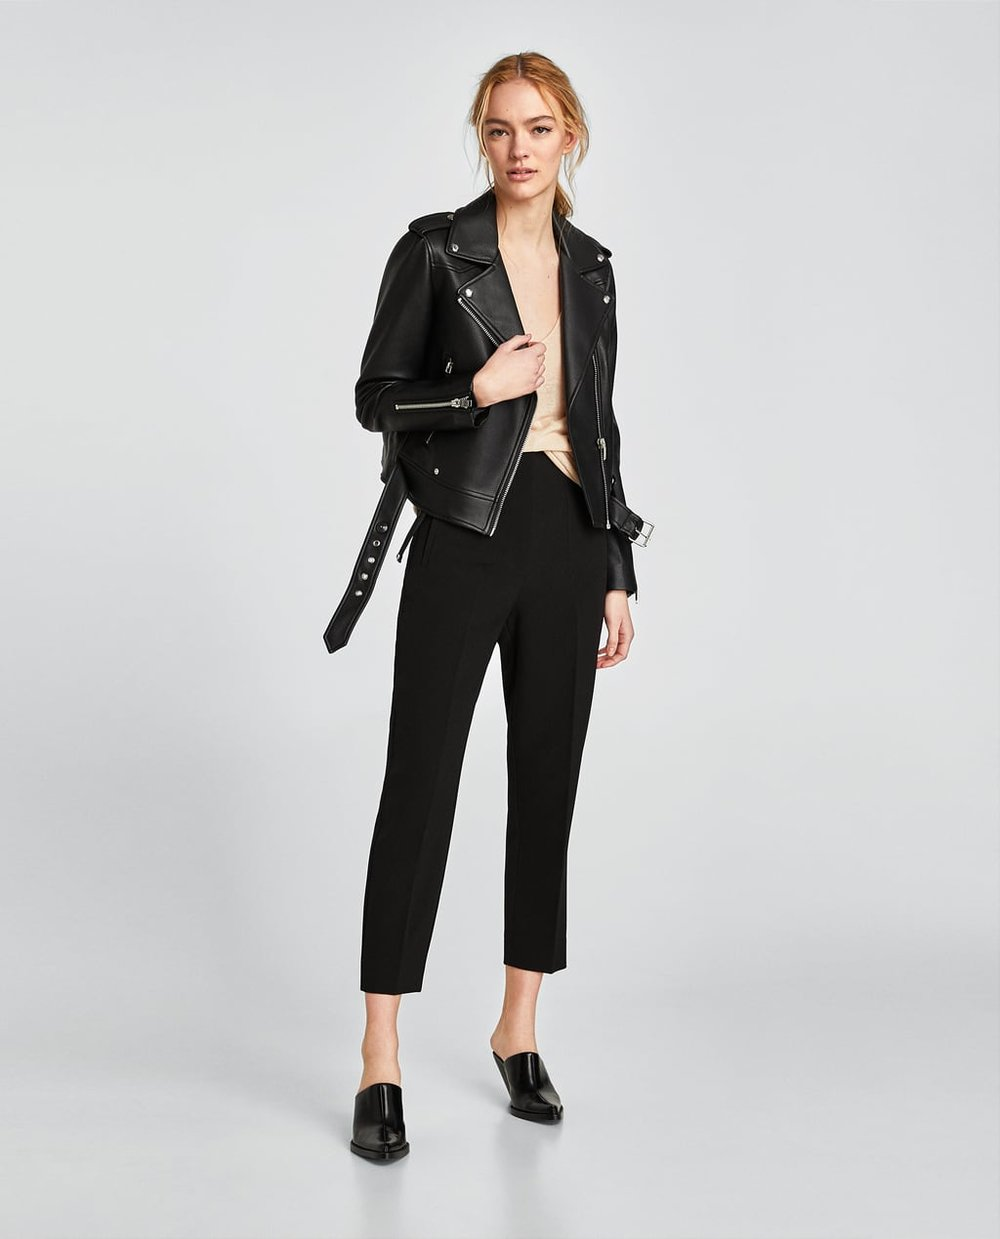 Zara Faux Leather Biker Jacket.jpg